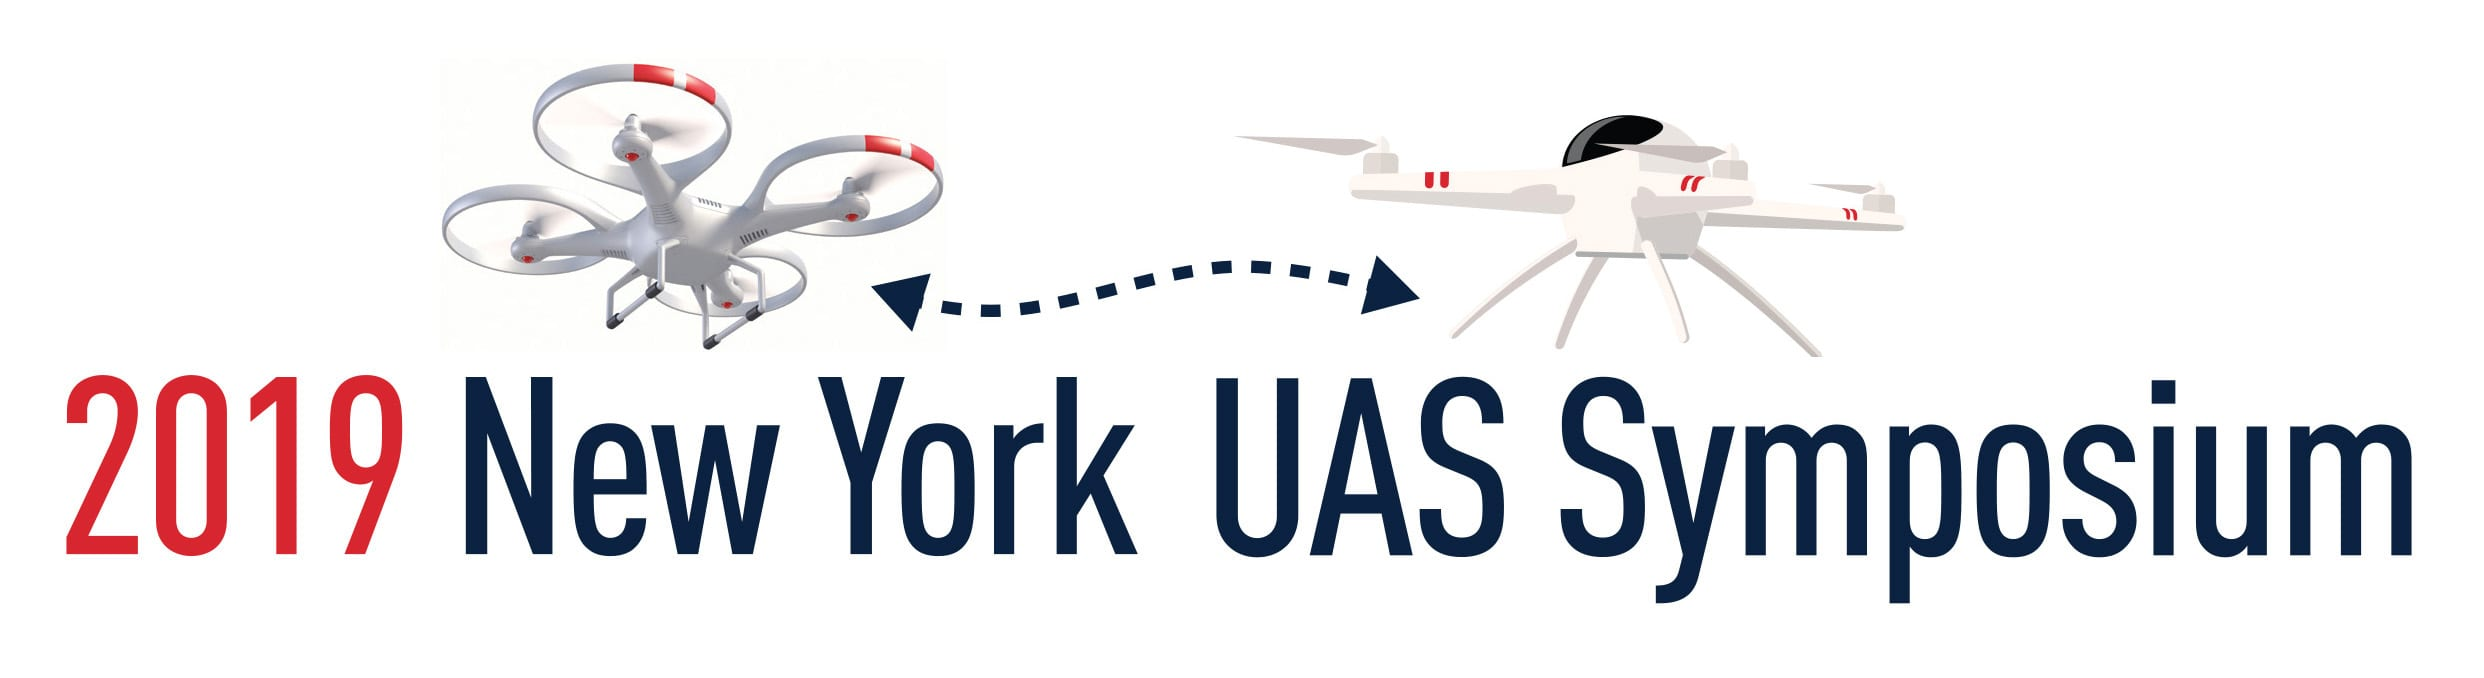 2019 New York UAS Symposium